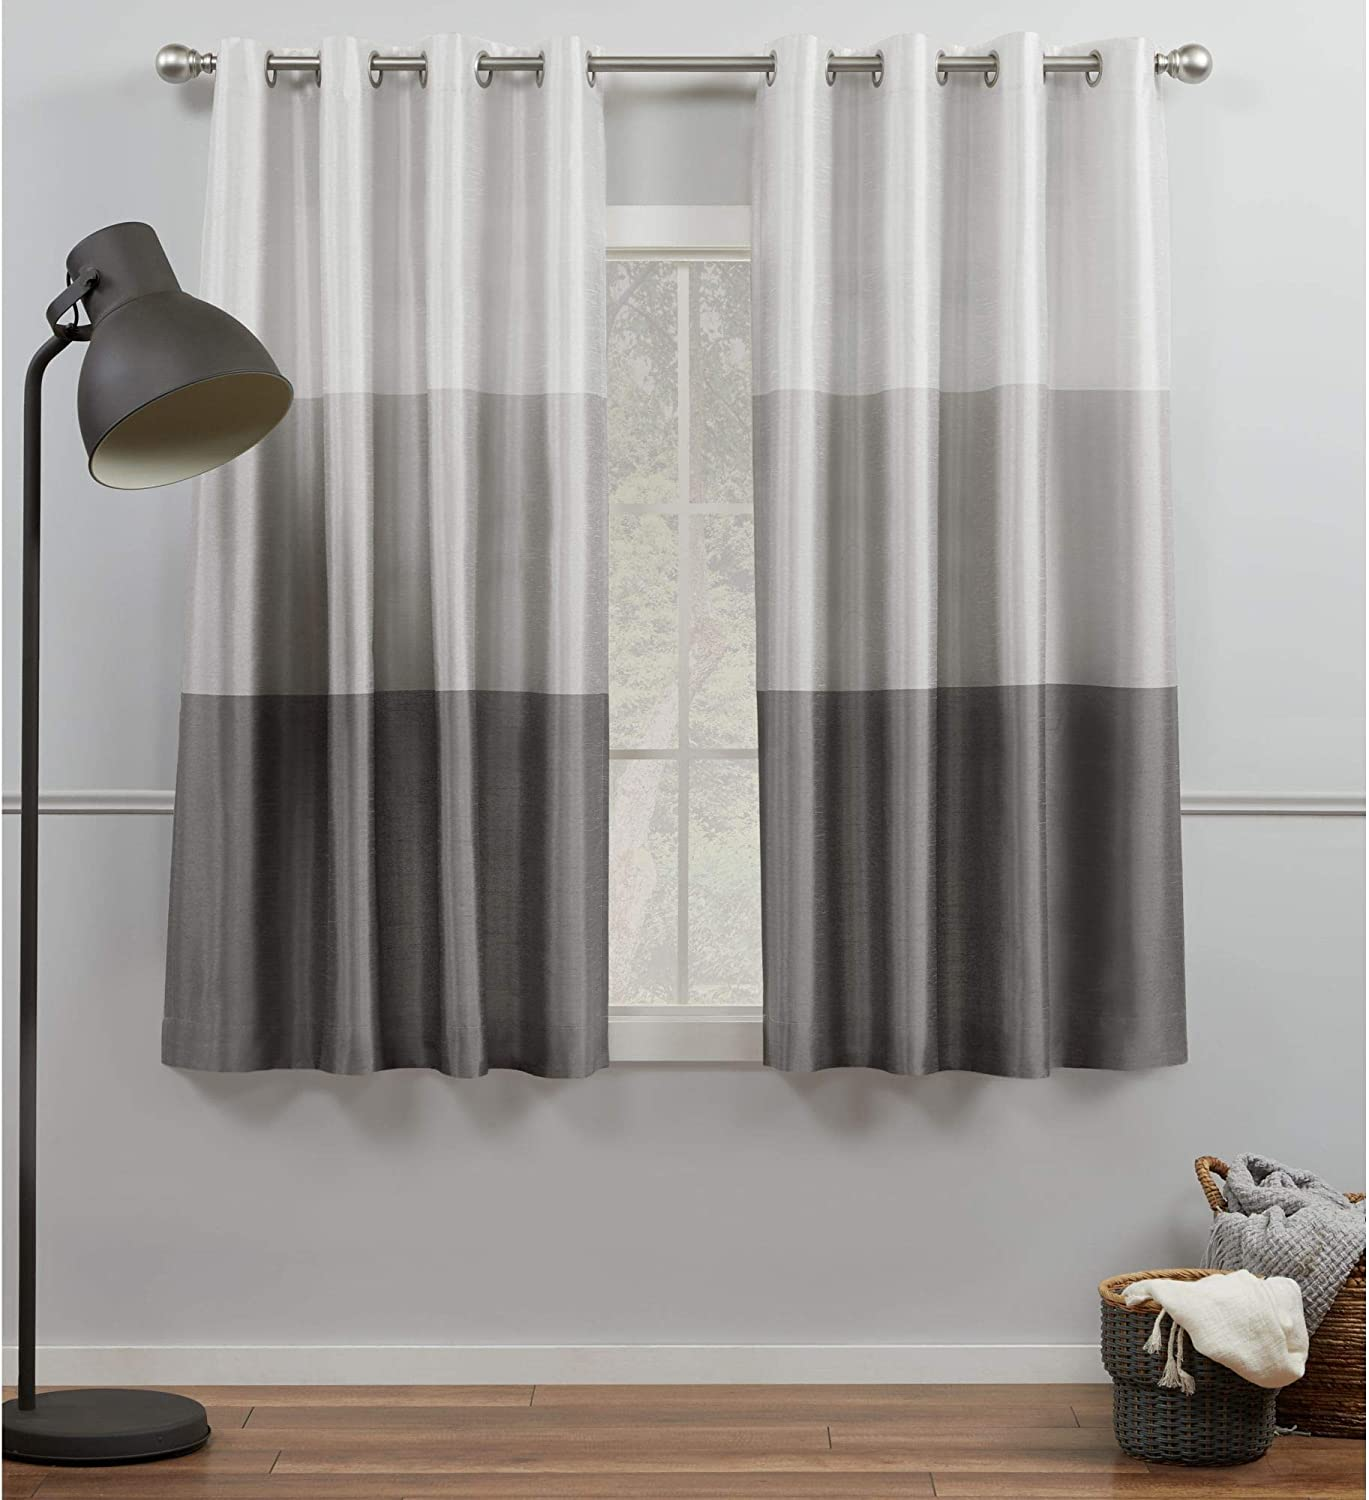 Exclusive Home Curtains Chateau Striped Faux Silk Grommet Top Curtain Panel Pair, 54x63, Black Pearl